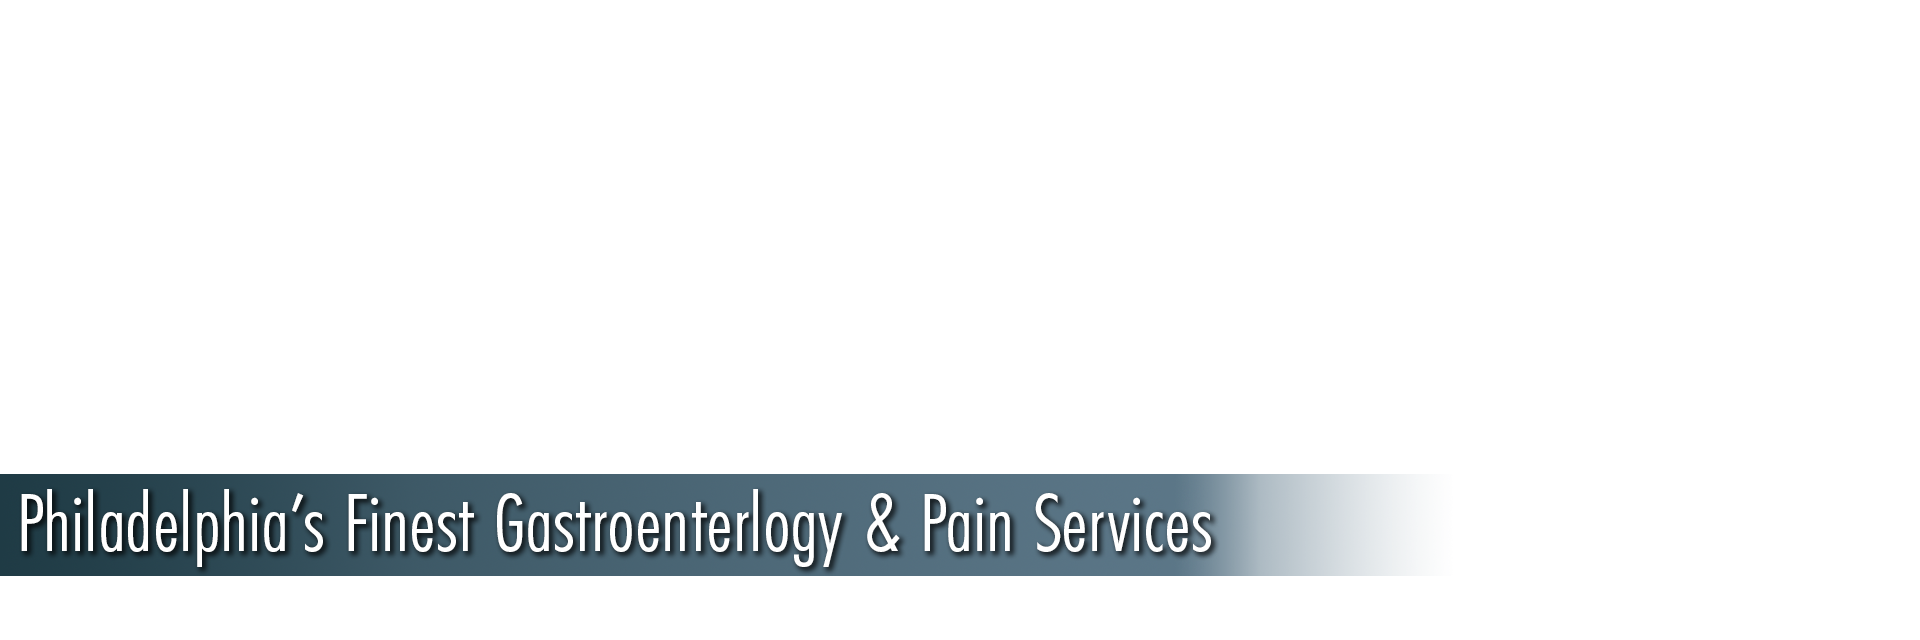 Philadelphia's Finest Gastroenterology and Pain Services - Grant Surgicenter